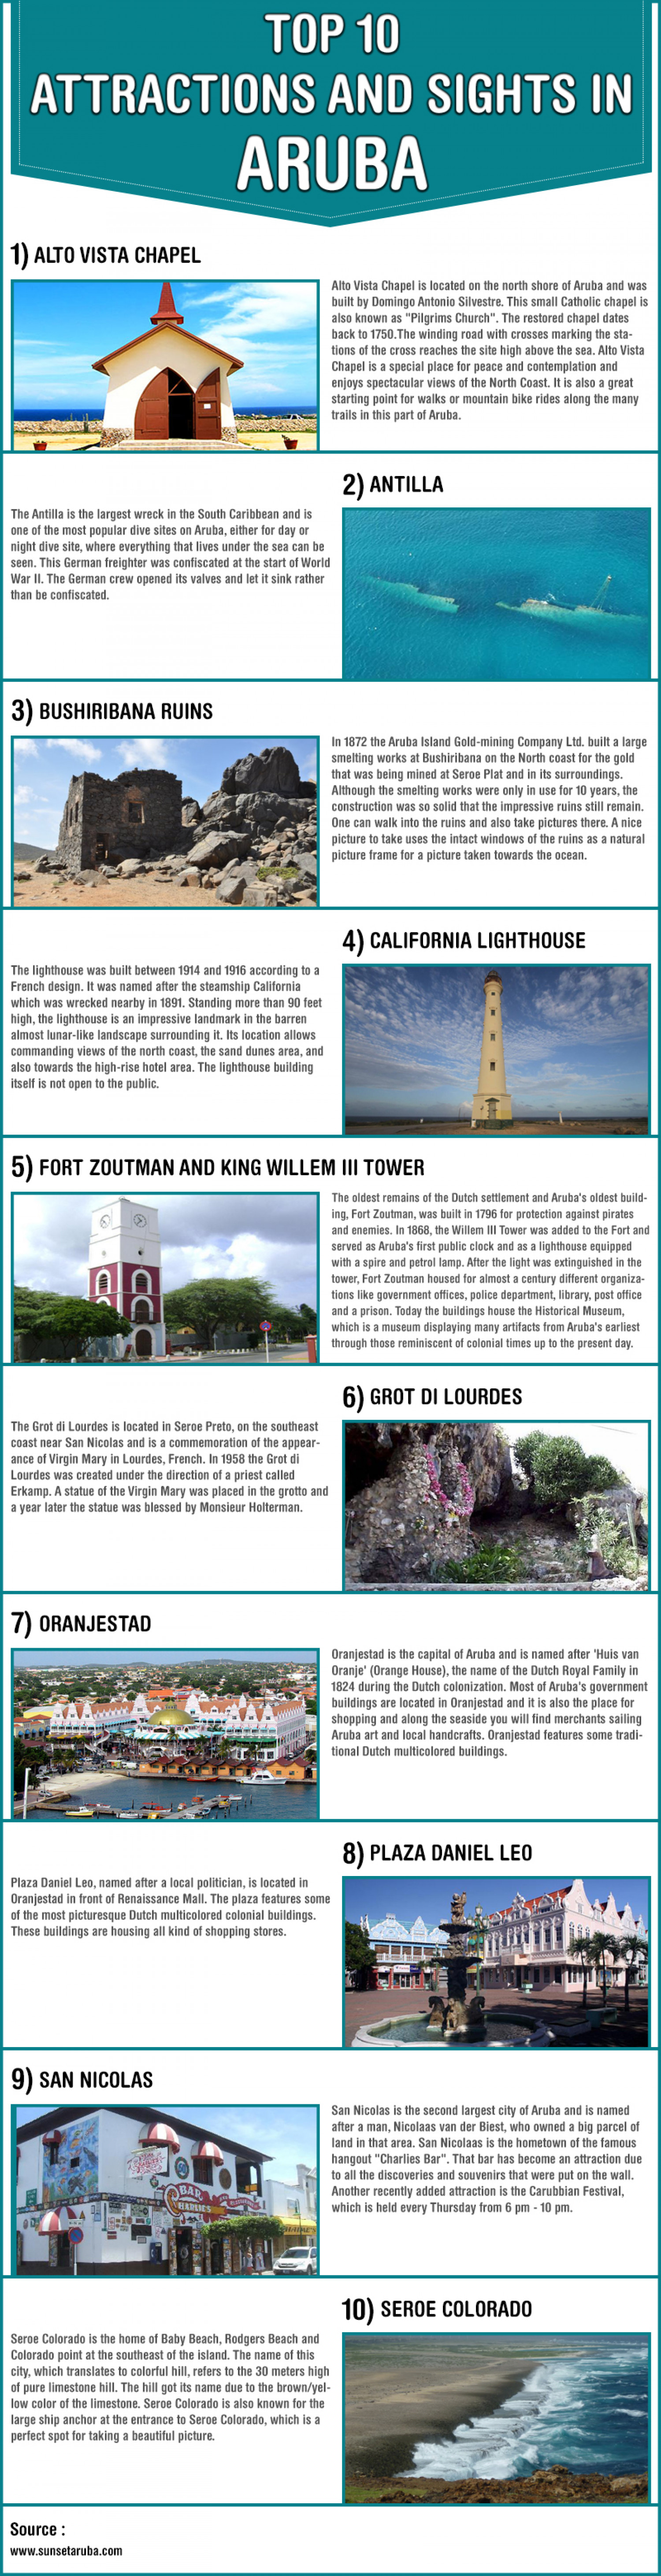 Top 10 Tourist Attractions and Sightseeing in Aruba Infographic